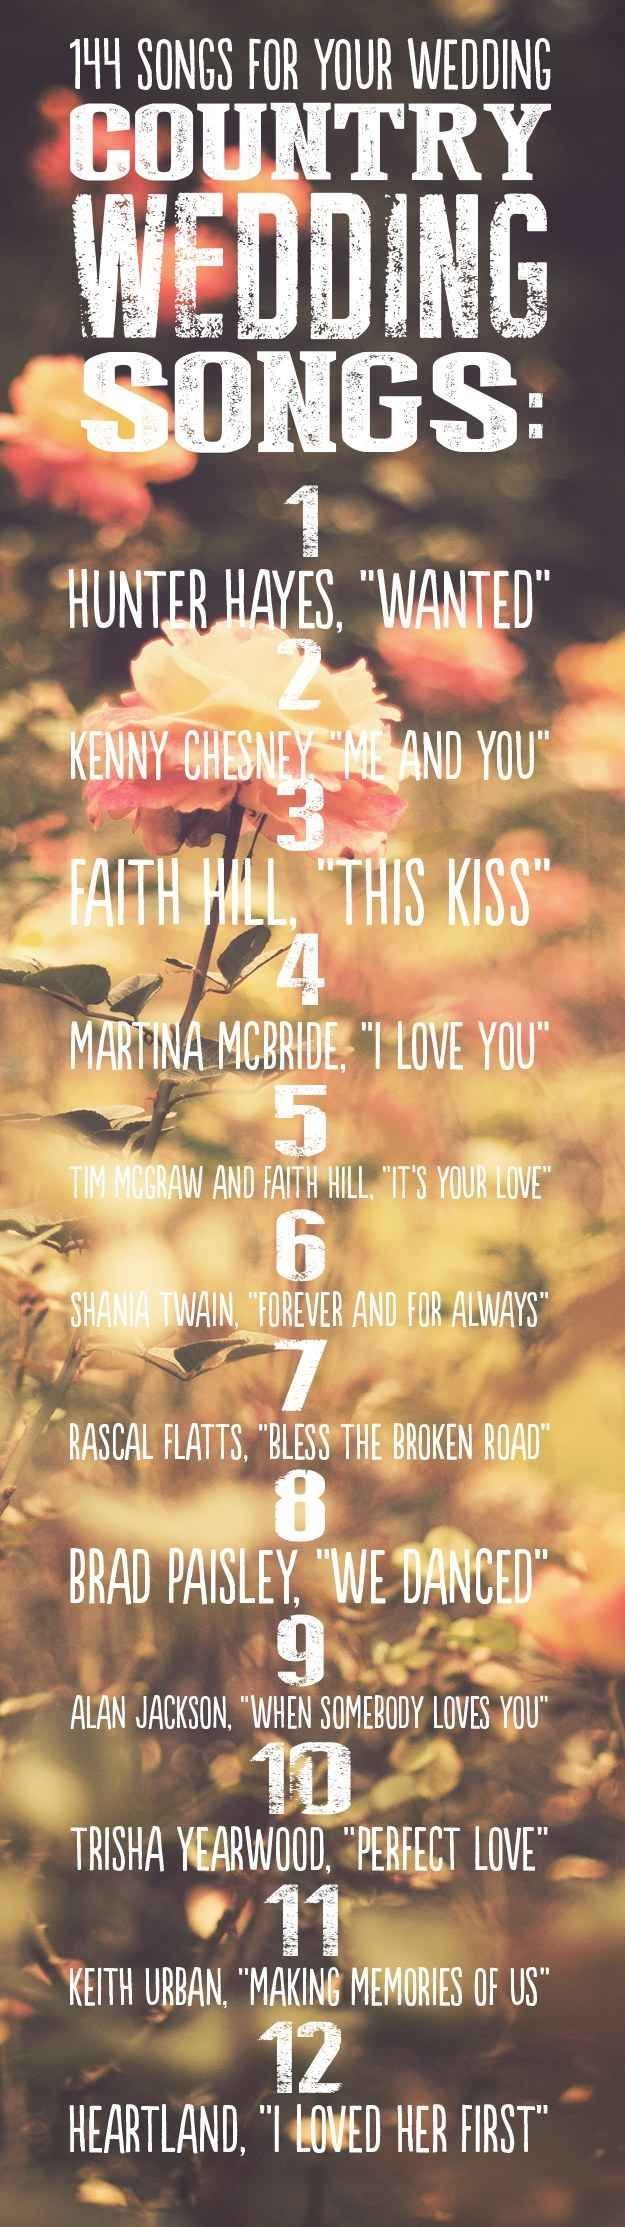 Country Songs For A Country Wedding Pictures Photos And Images For Facebook Tumblr Pinterest